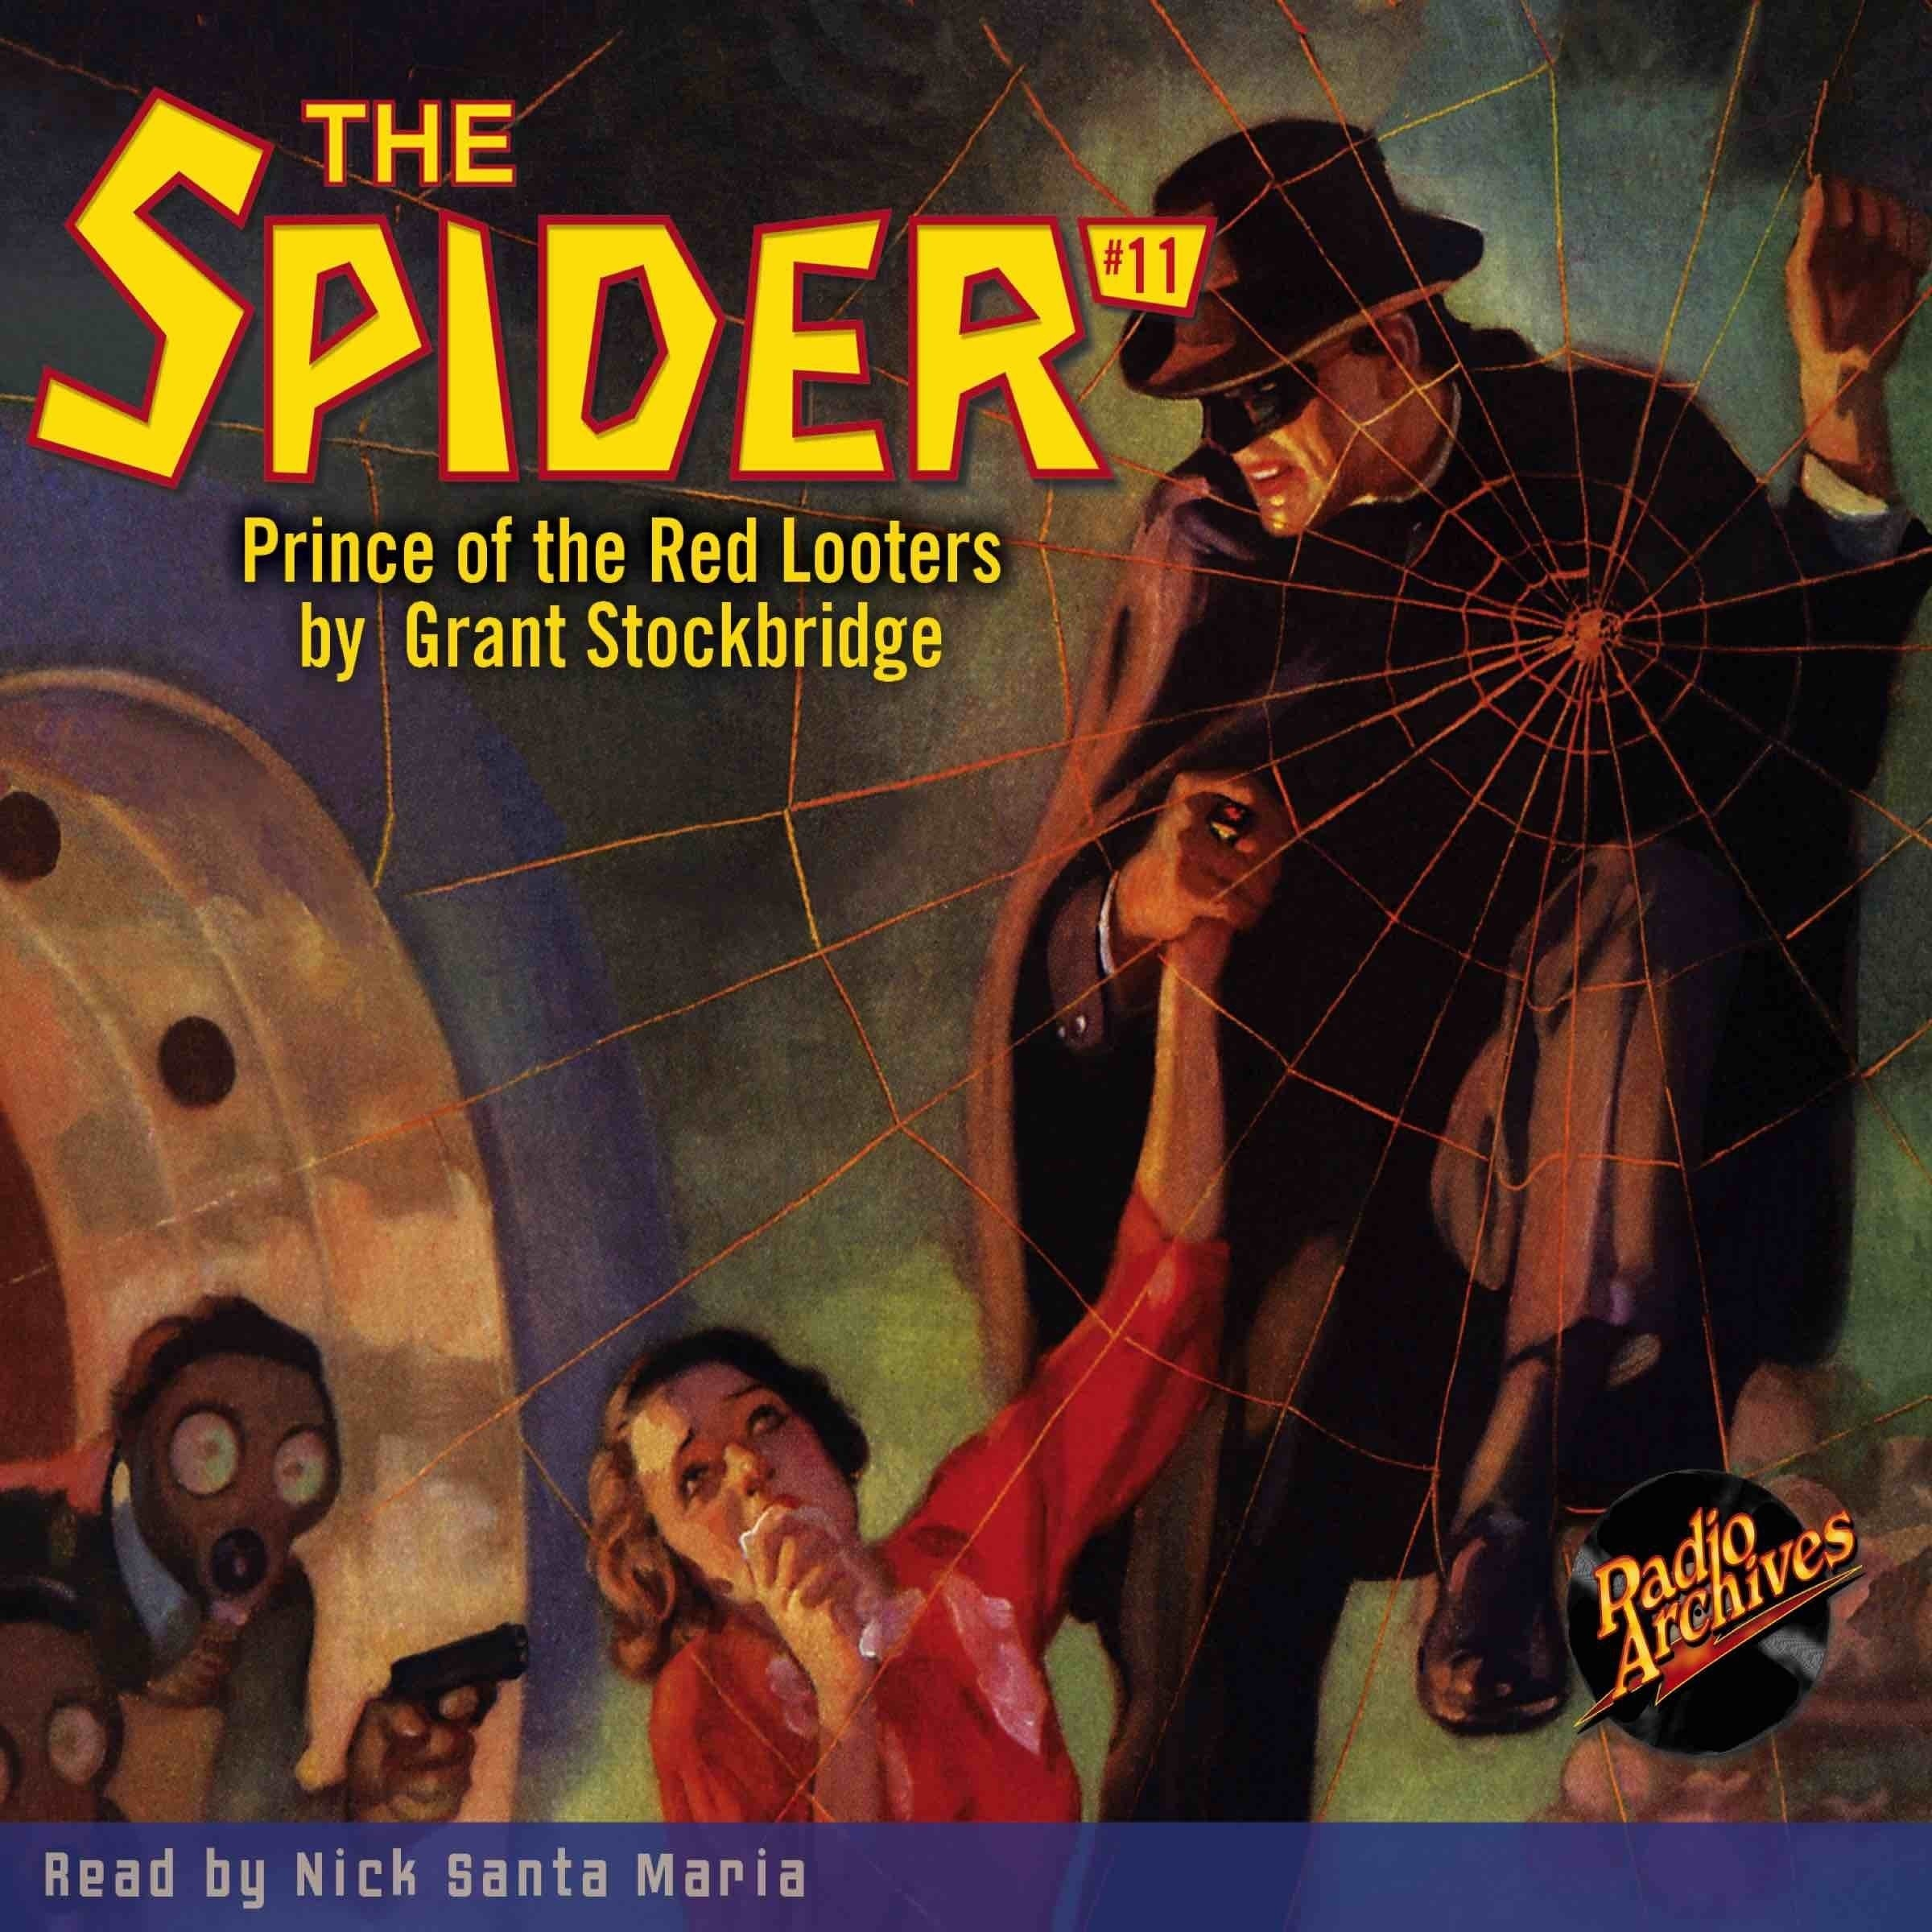 Printable The Spider #11: Prince of the Red Looters Audiobook Cover Art